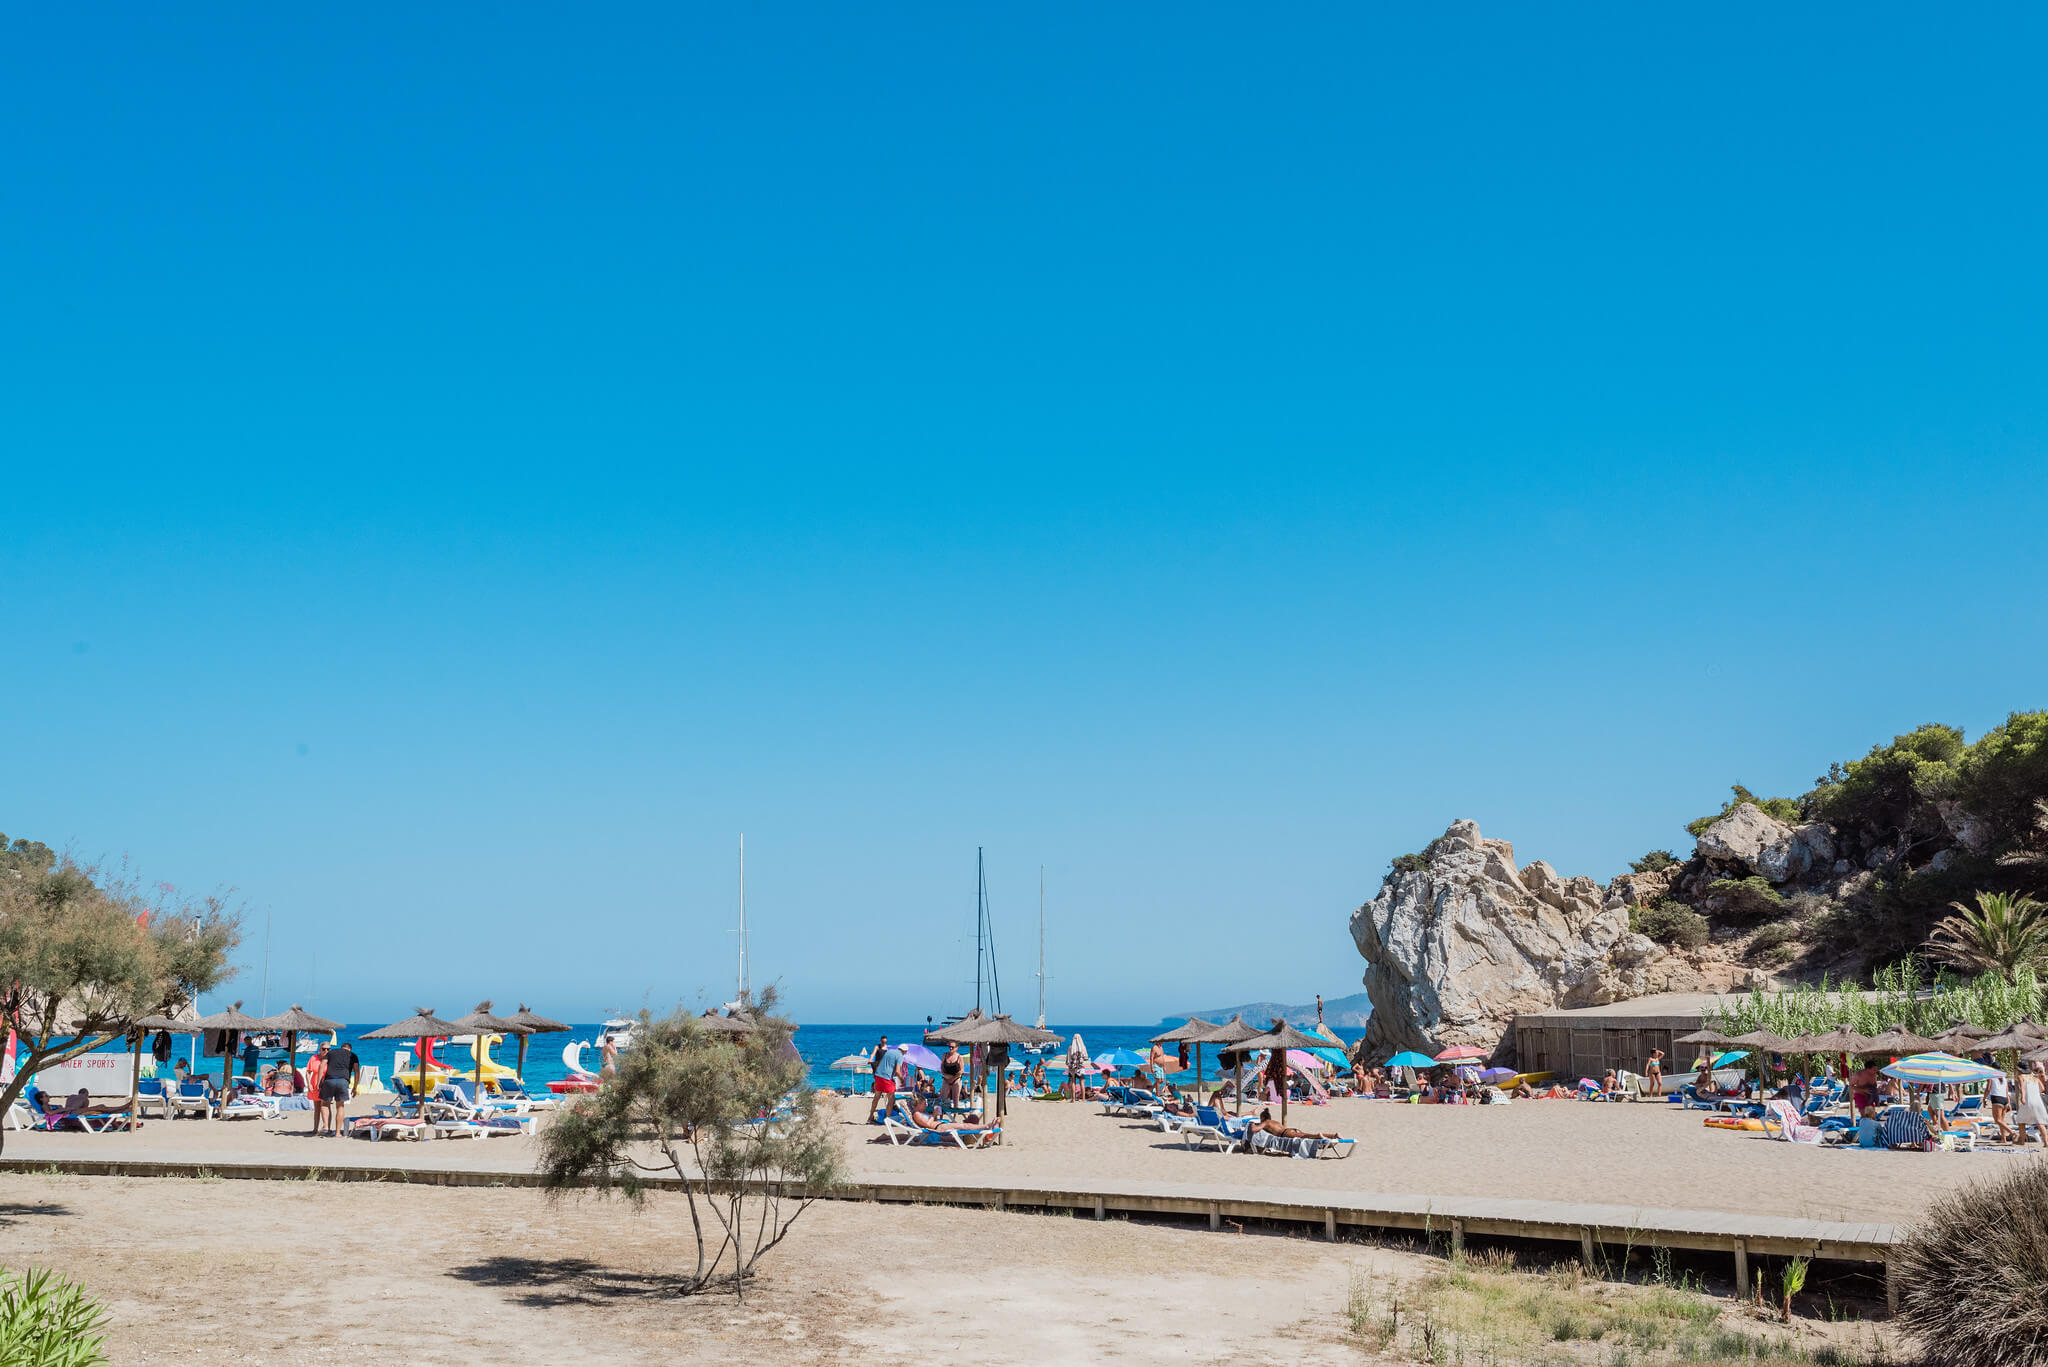 https://www.white-ibiza.com/wp-content/uploads/2020/03/ibiza-beaches-cala-san-vicente-02.jpg